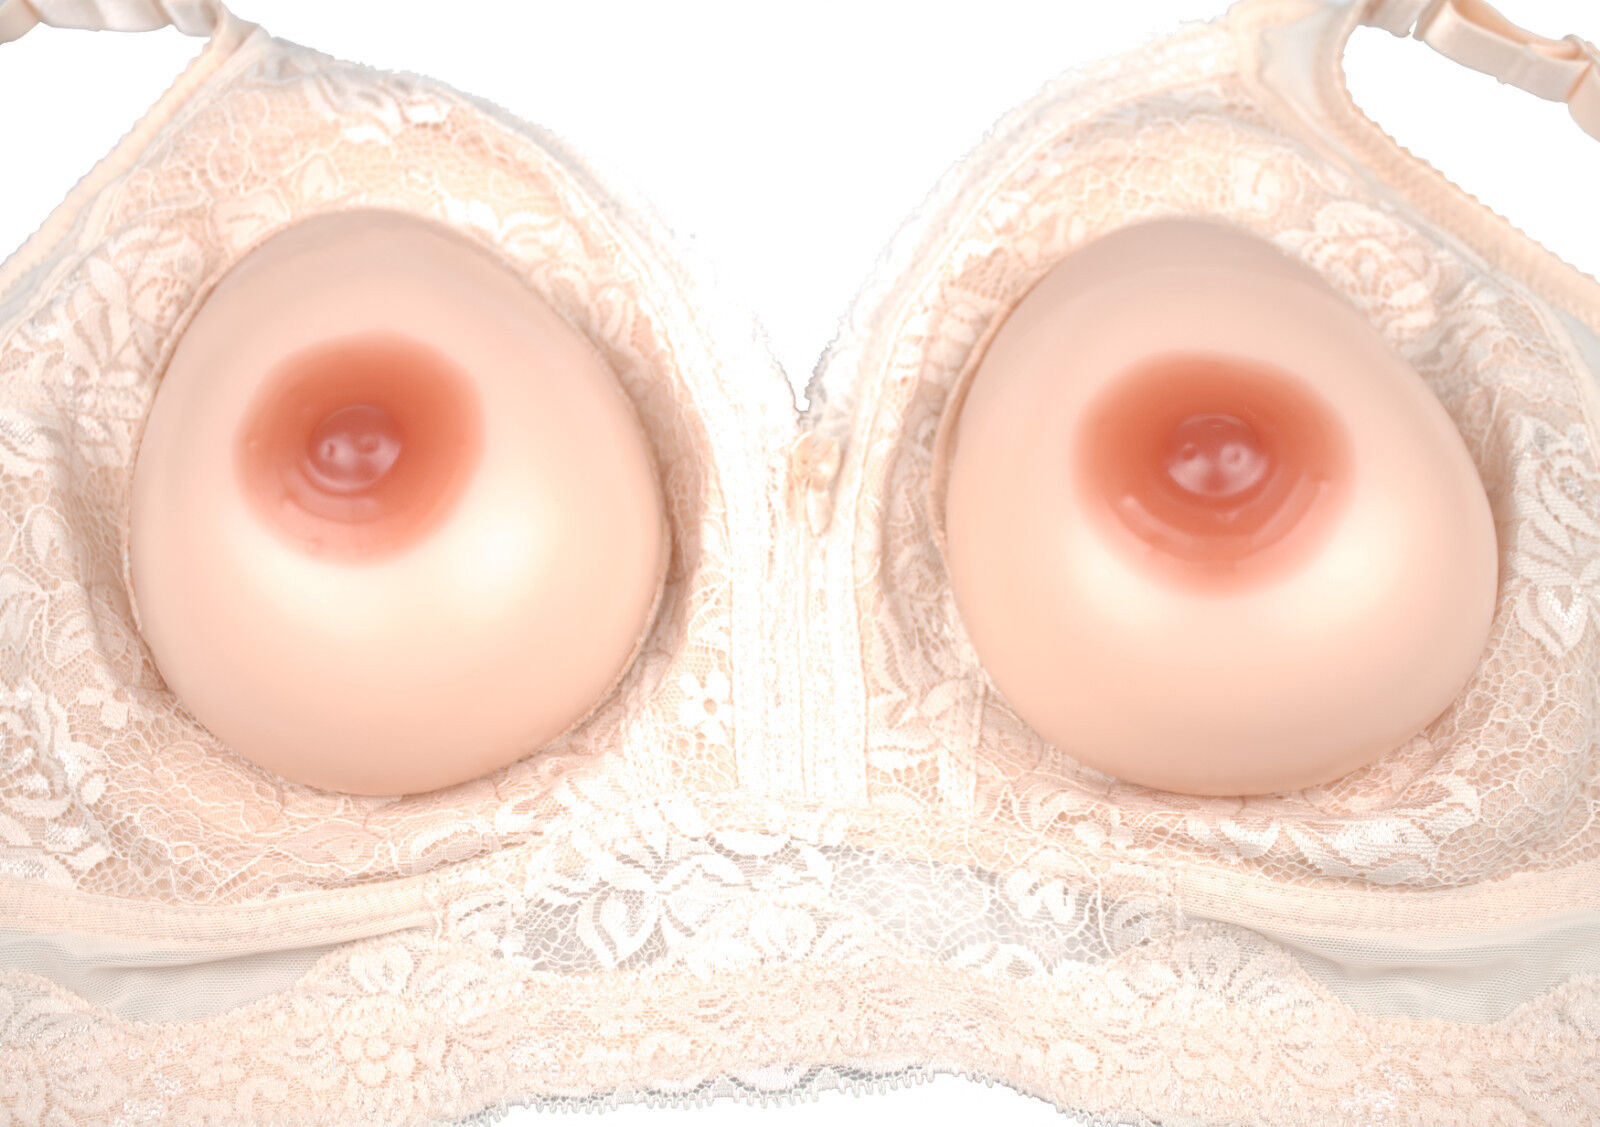 Pics of ee cup breasts — pic 2